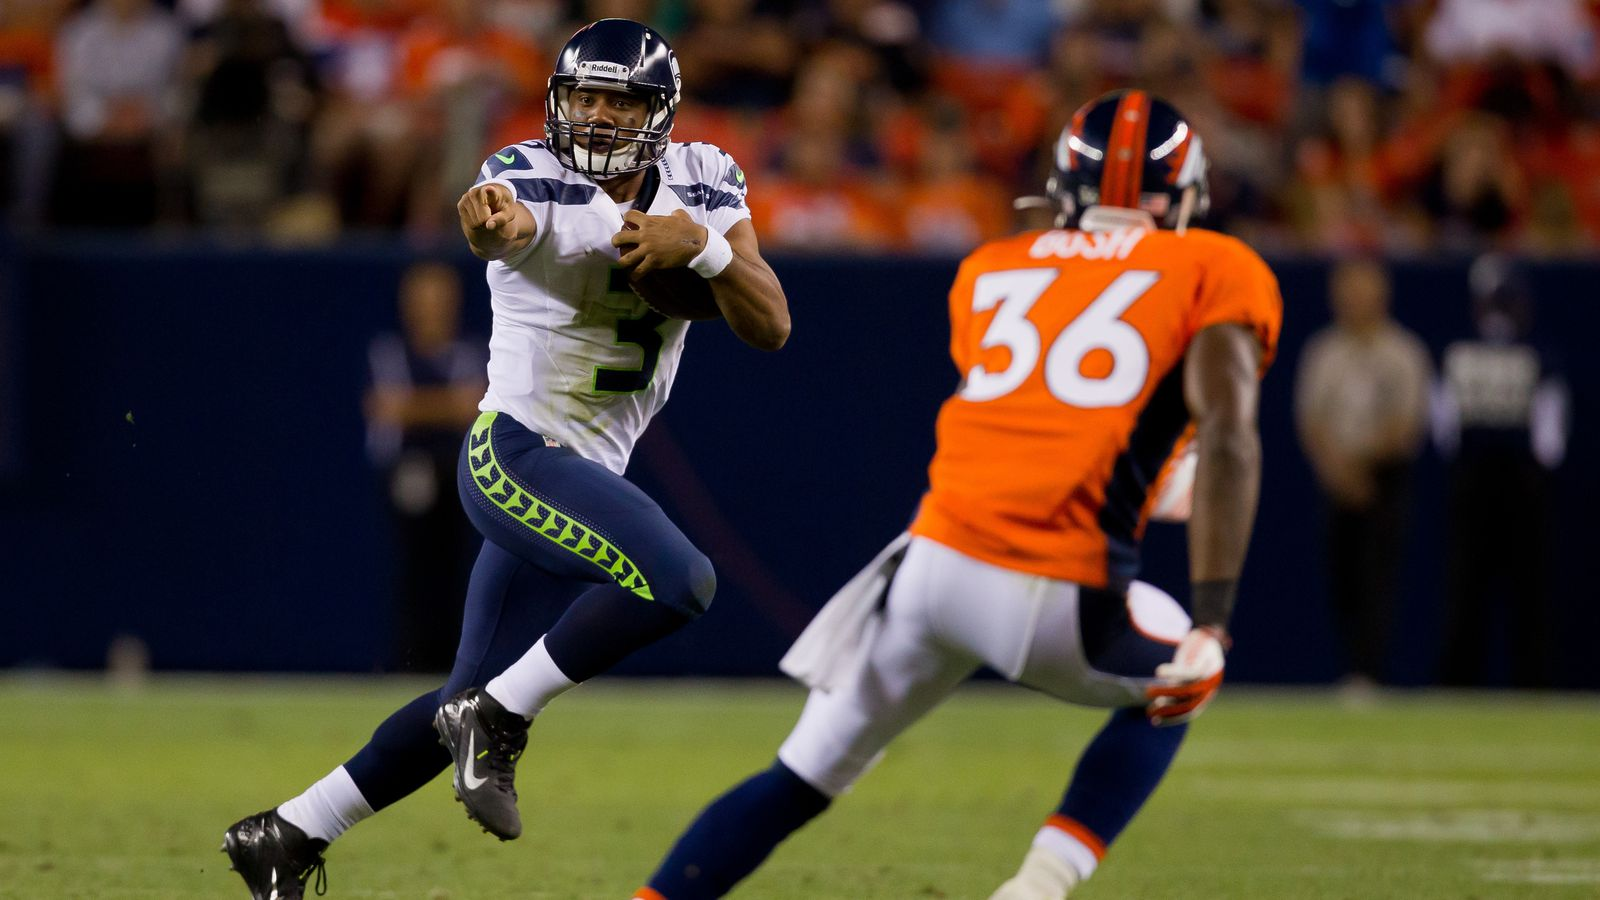 Broncos at Seahawks preseason 2013: Game time, TV schedule